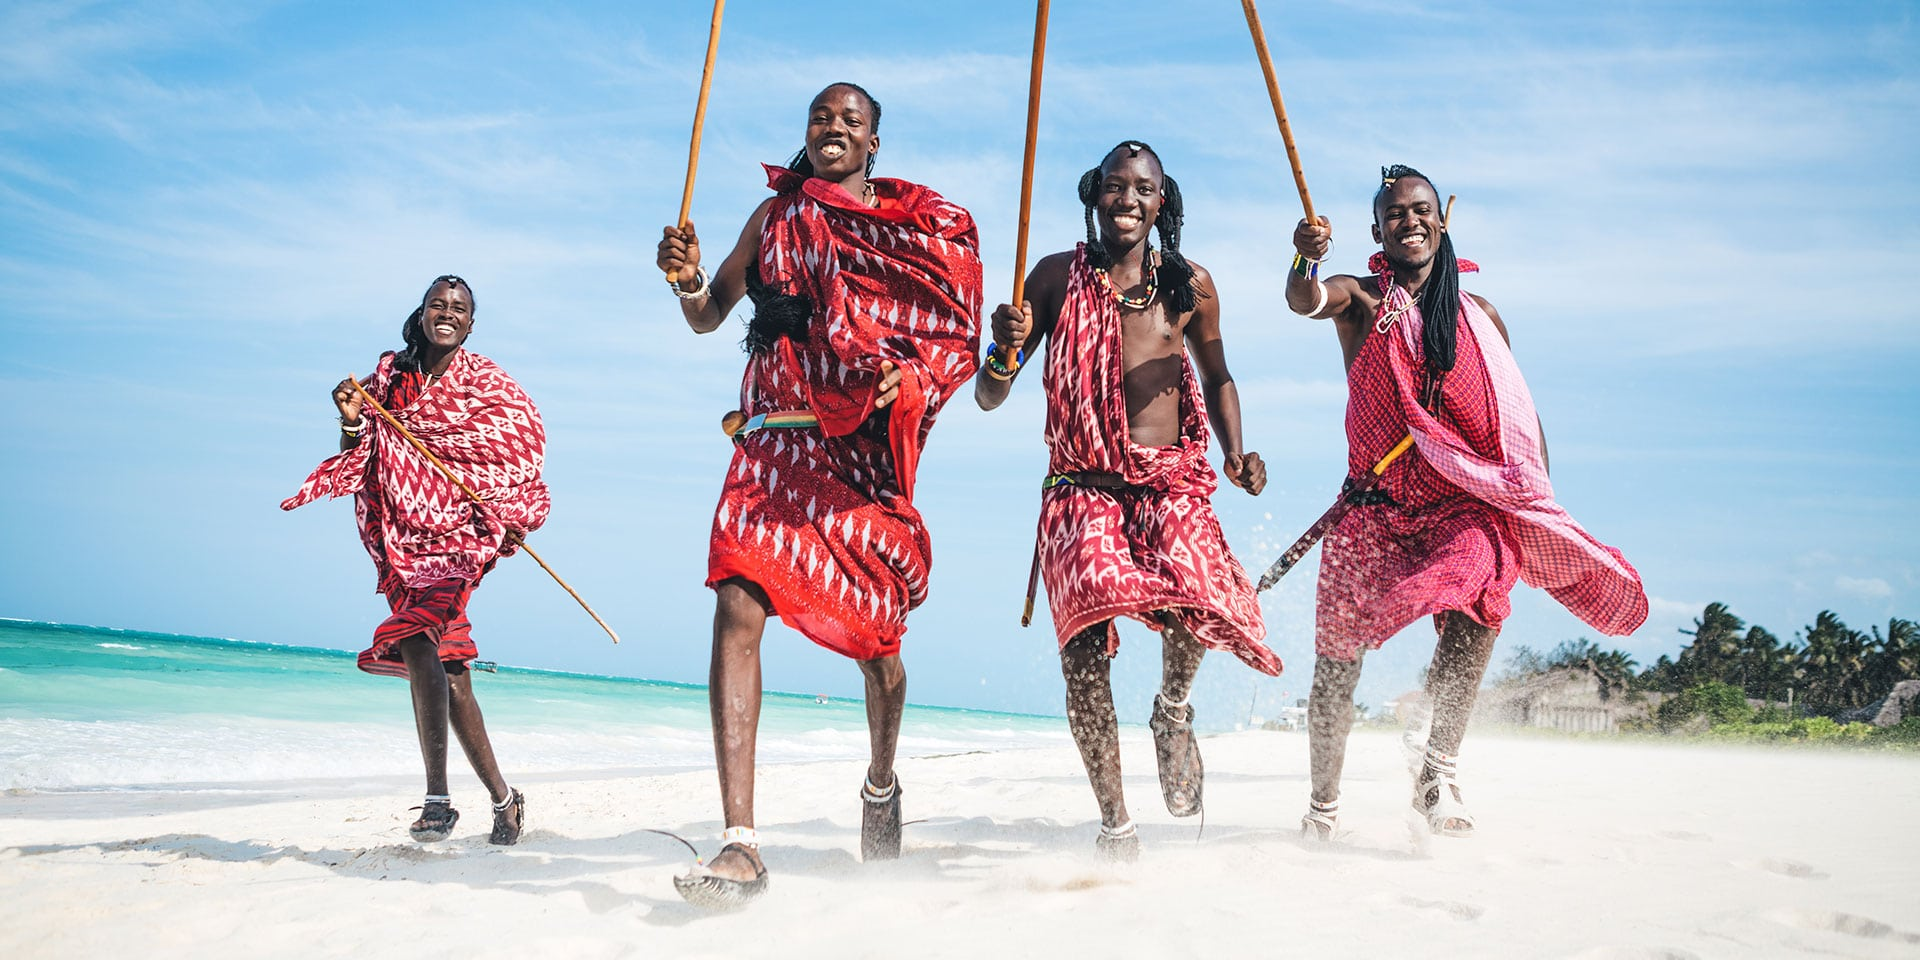 Africa Dreaming: 5 Unforgettable Experiences to Have in Tanzania